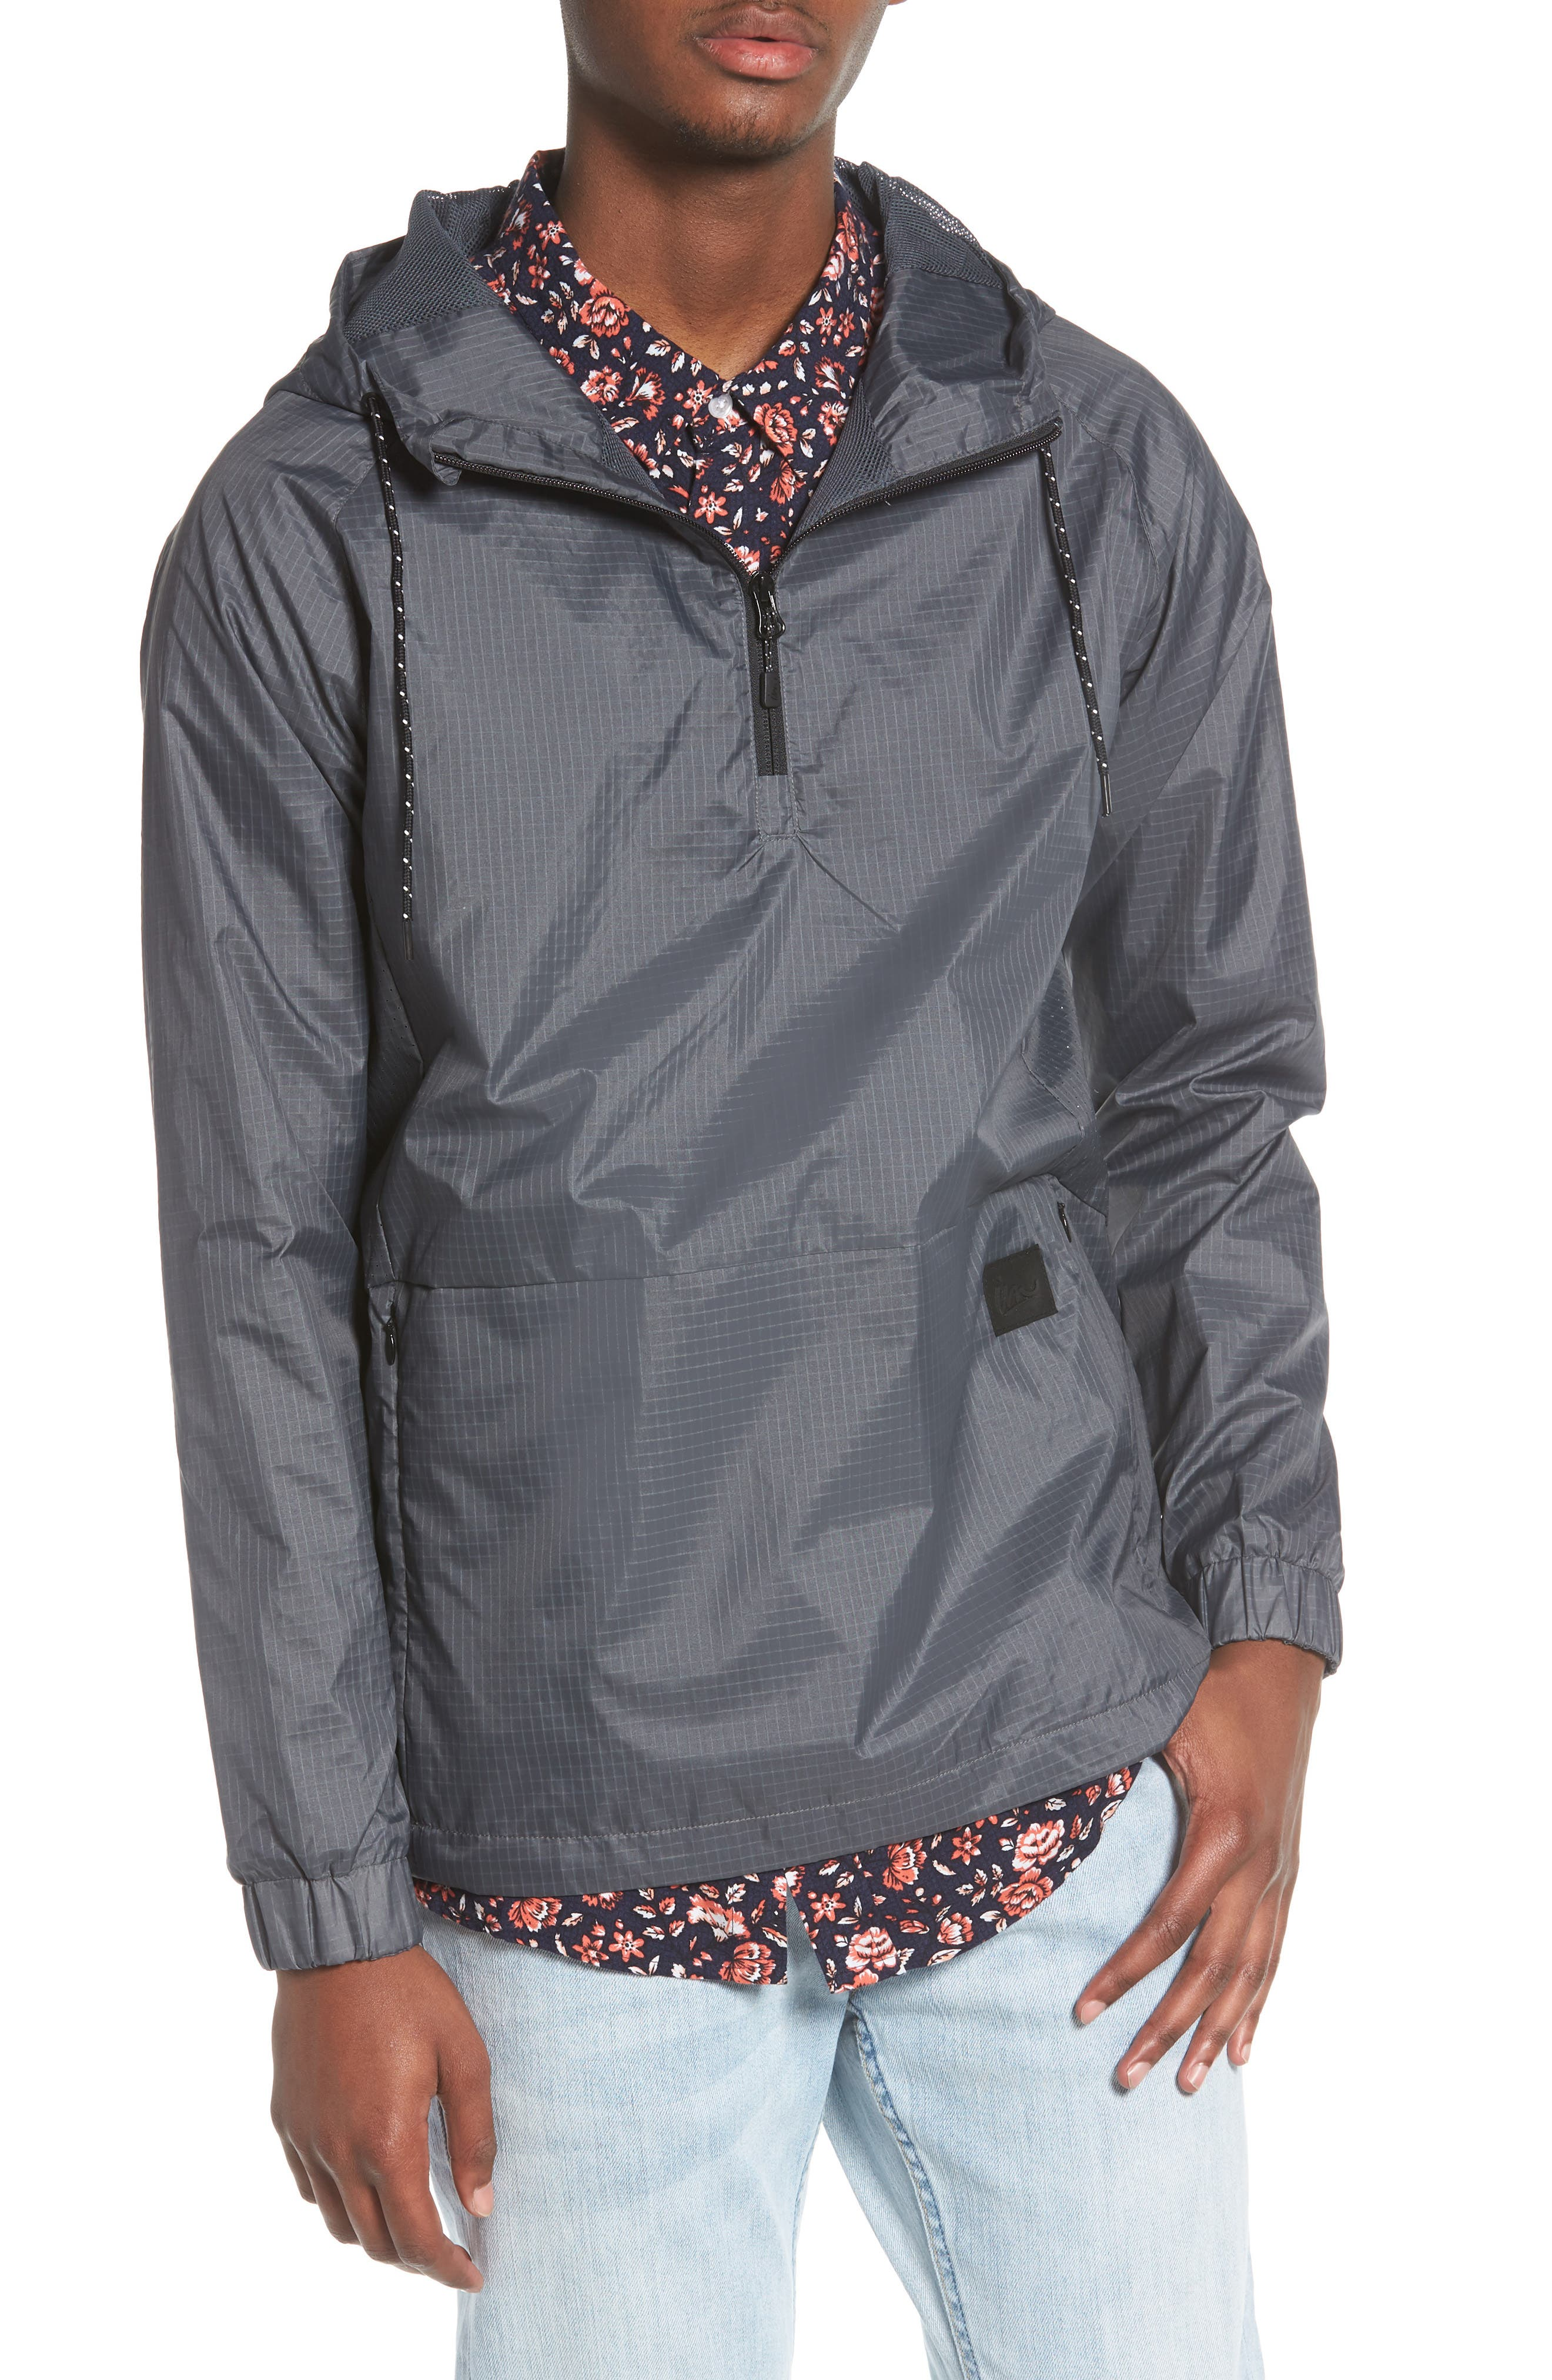 Imperial Motion NCT Bezel Packable Anorak